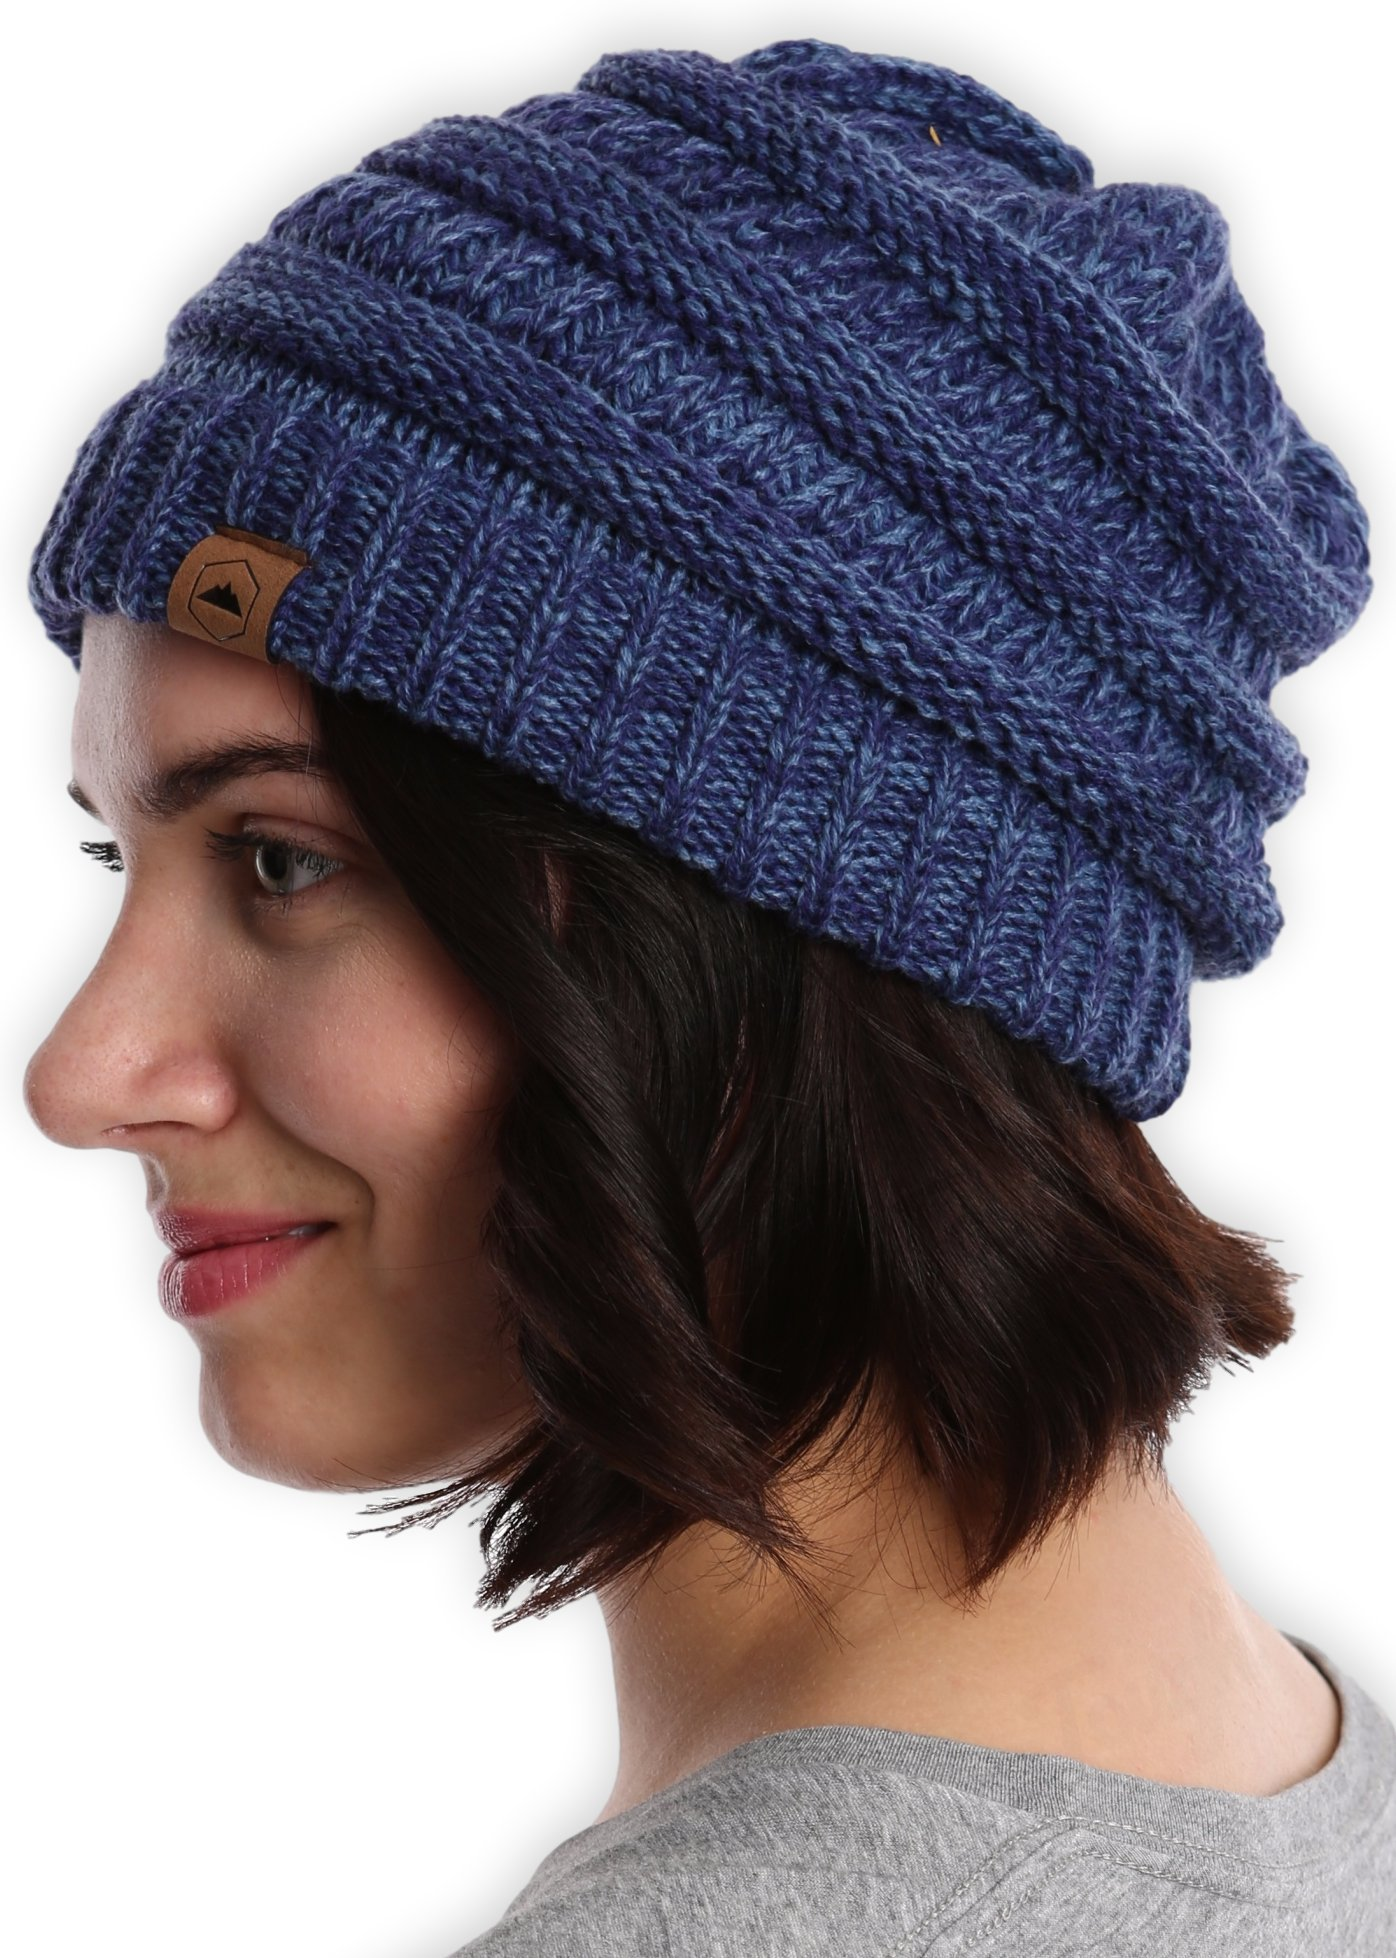 20cd72ae088 Best Rated in Women s Cold Weather Hats   Caps   Helpful Customer ...